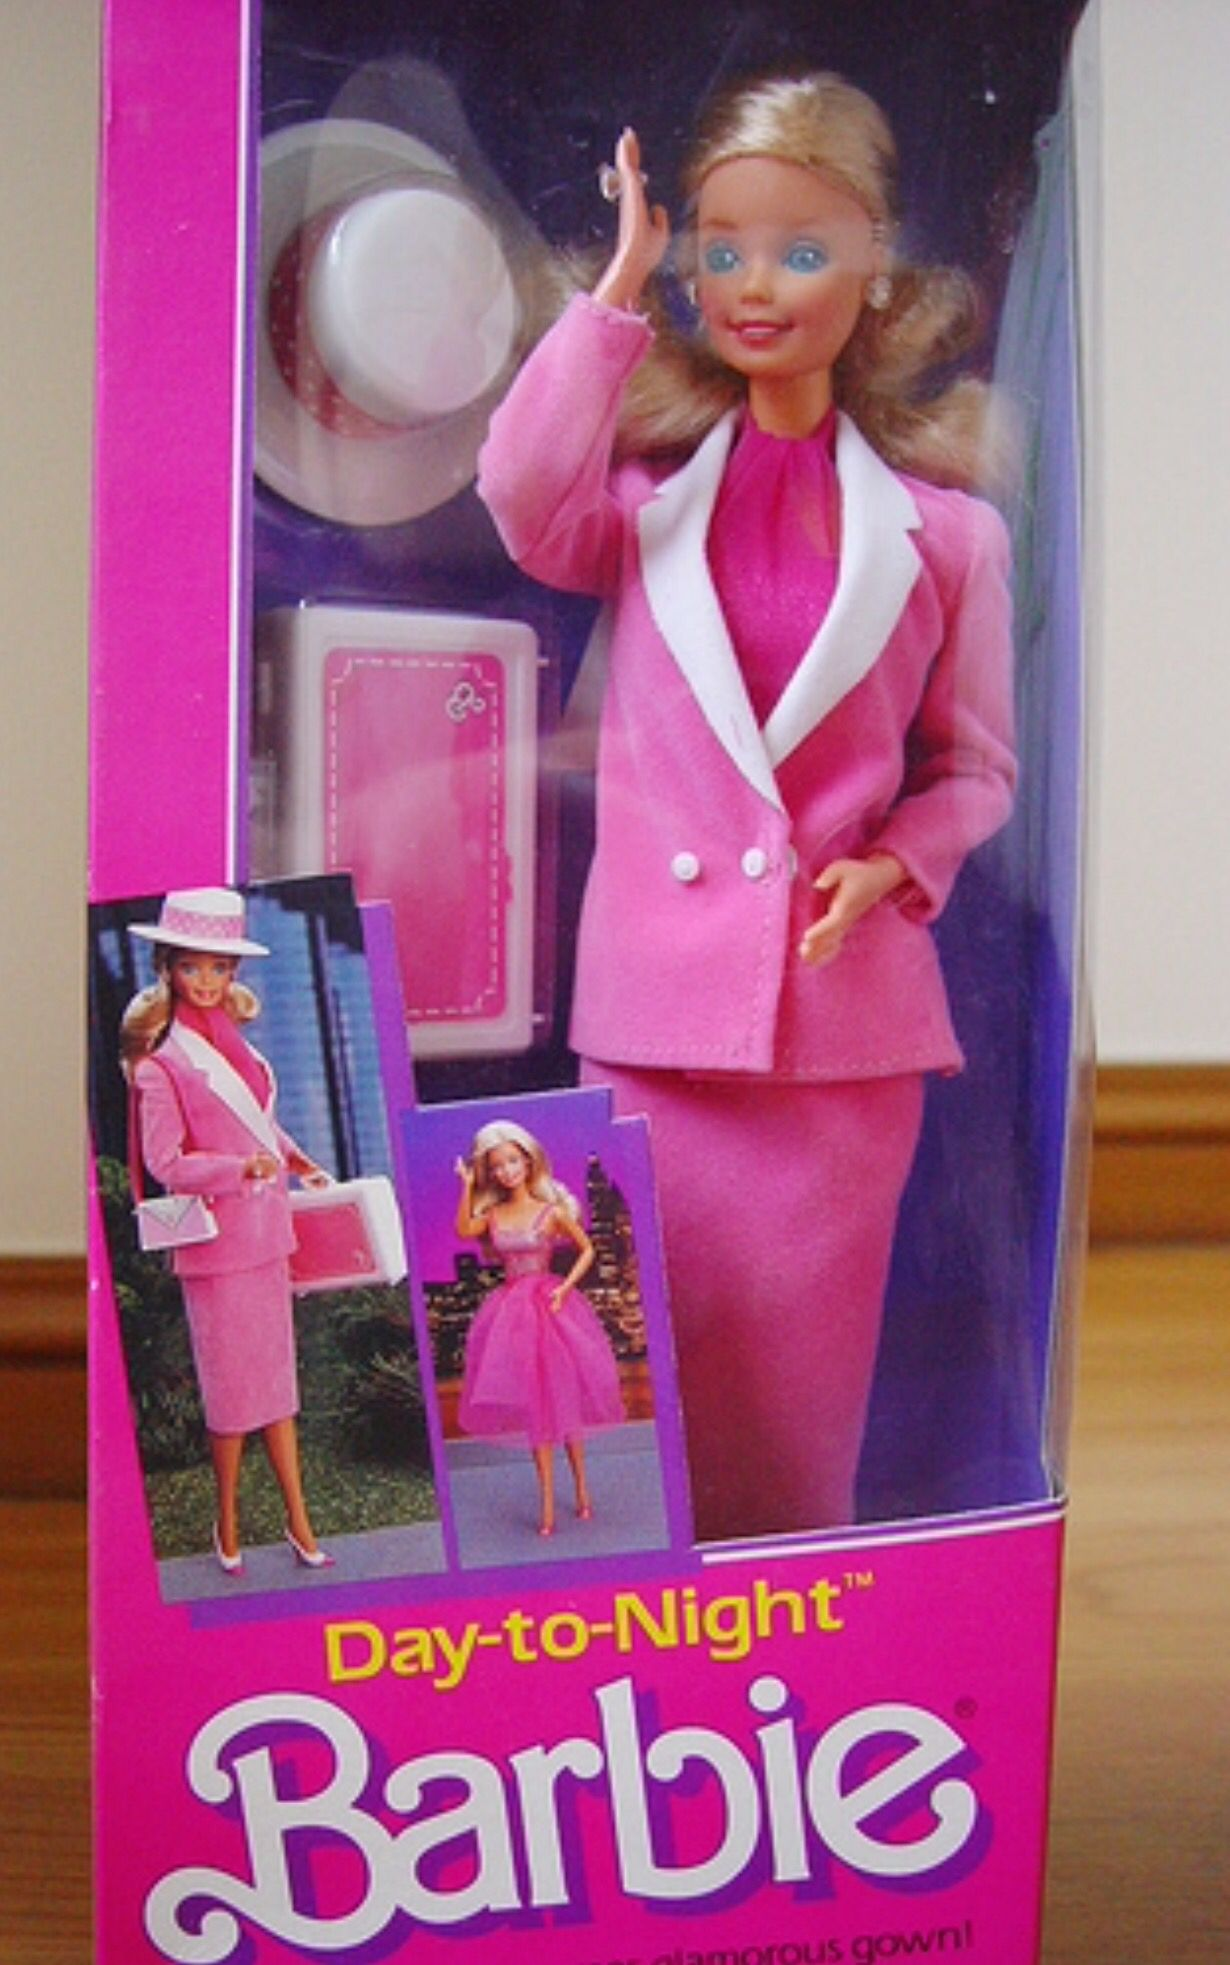 061c1f7c5946 1984 Day to Night Barbie. I remember my dad bought me this Barbie that  summer for having good grades. He let me pick it out.